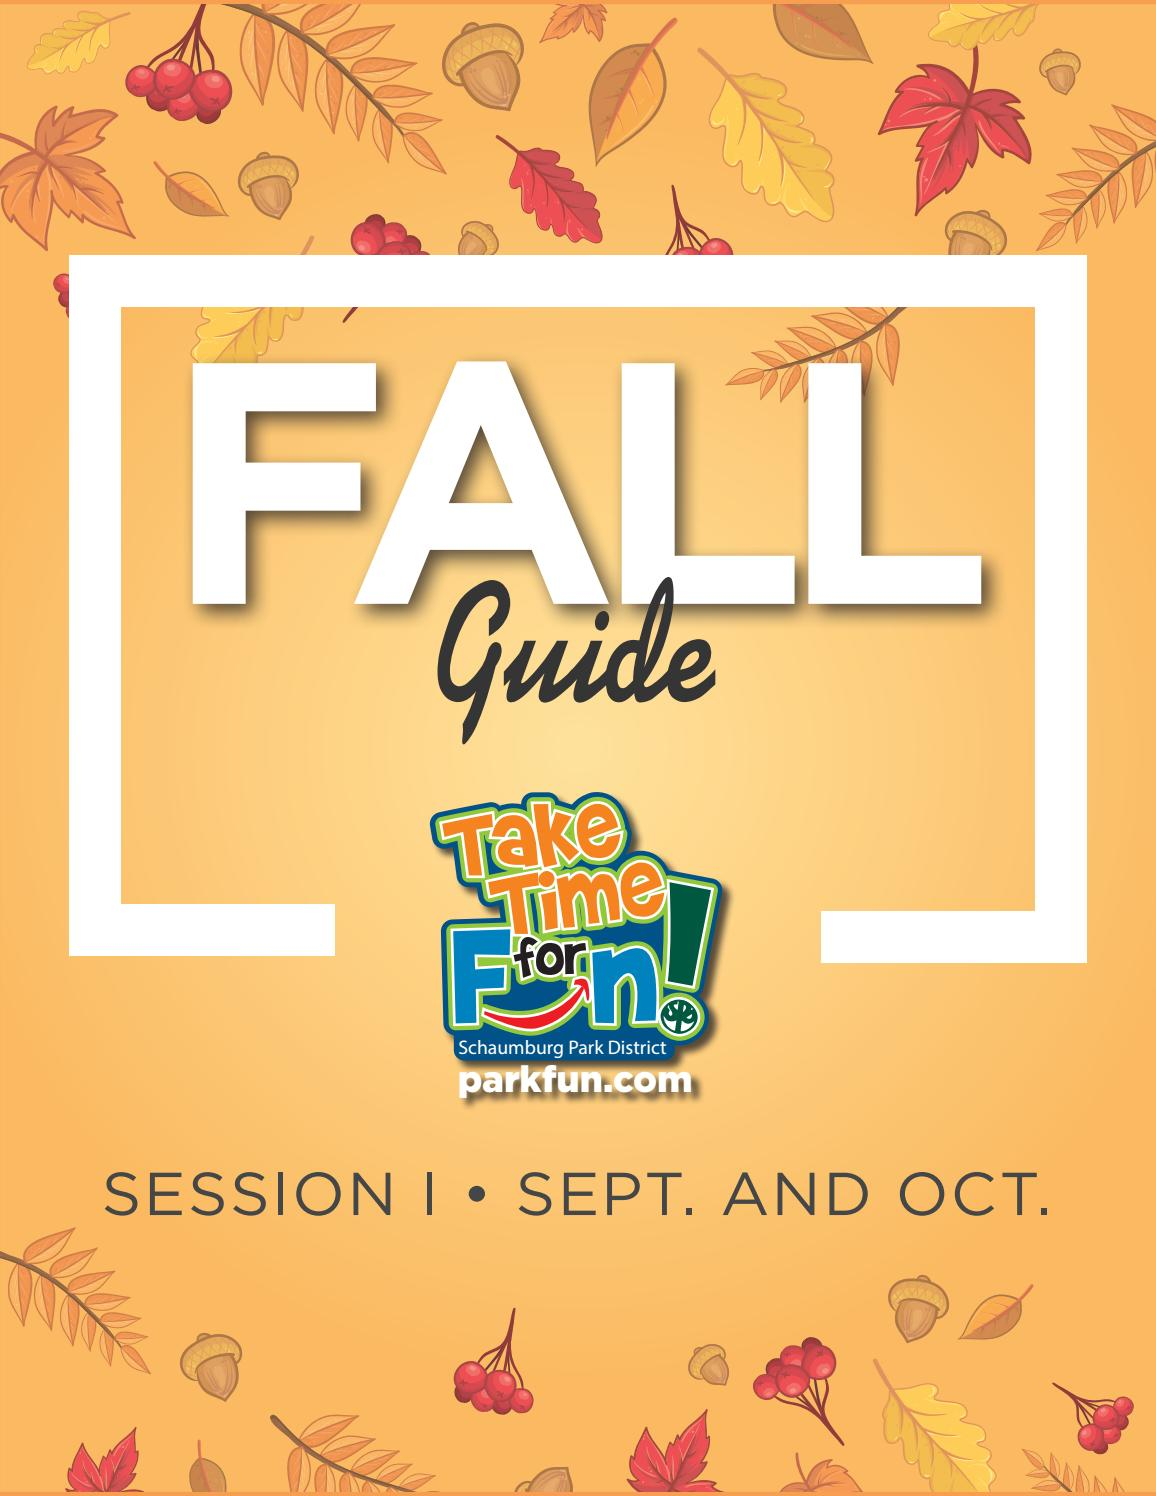 schaumburg park district 2020 fall brochure session 1 by schaumburg park district issuu issuu